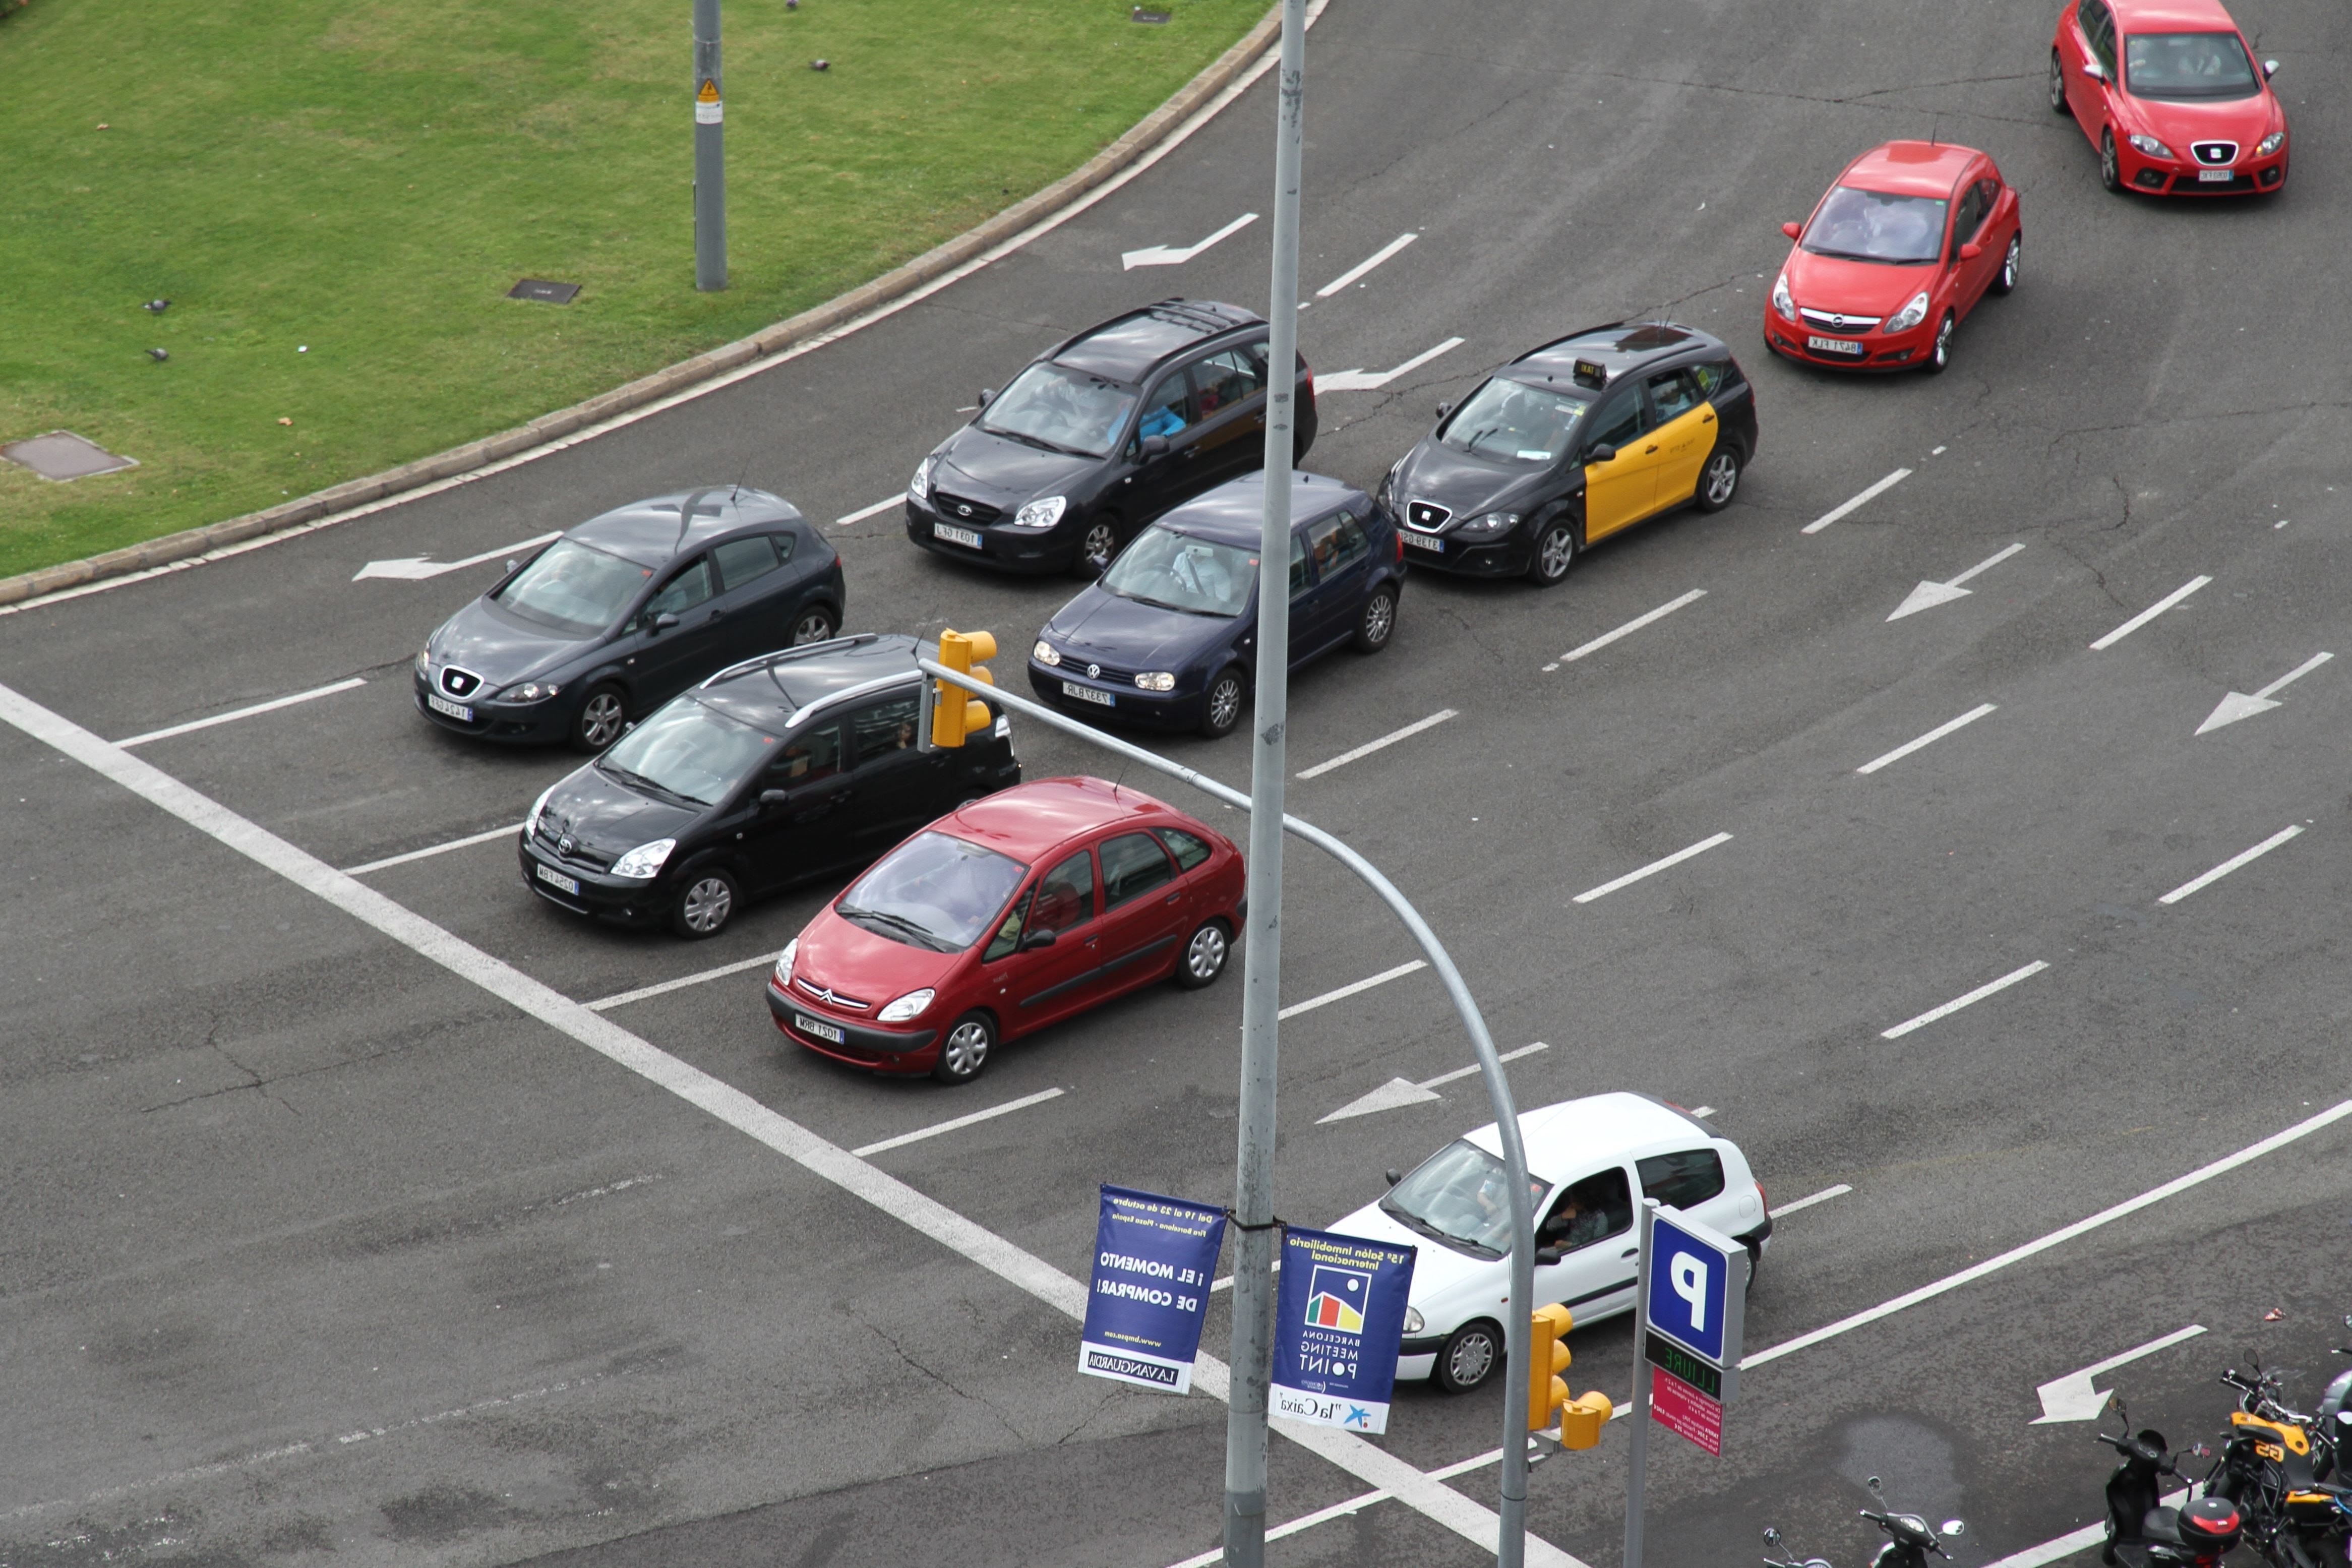 Free Picture Intersection Car Traffic Light Asphalt Traffic Vehicle